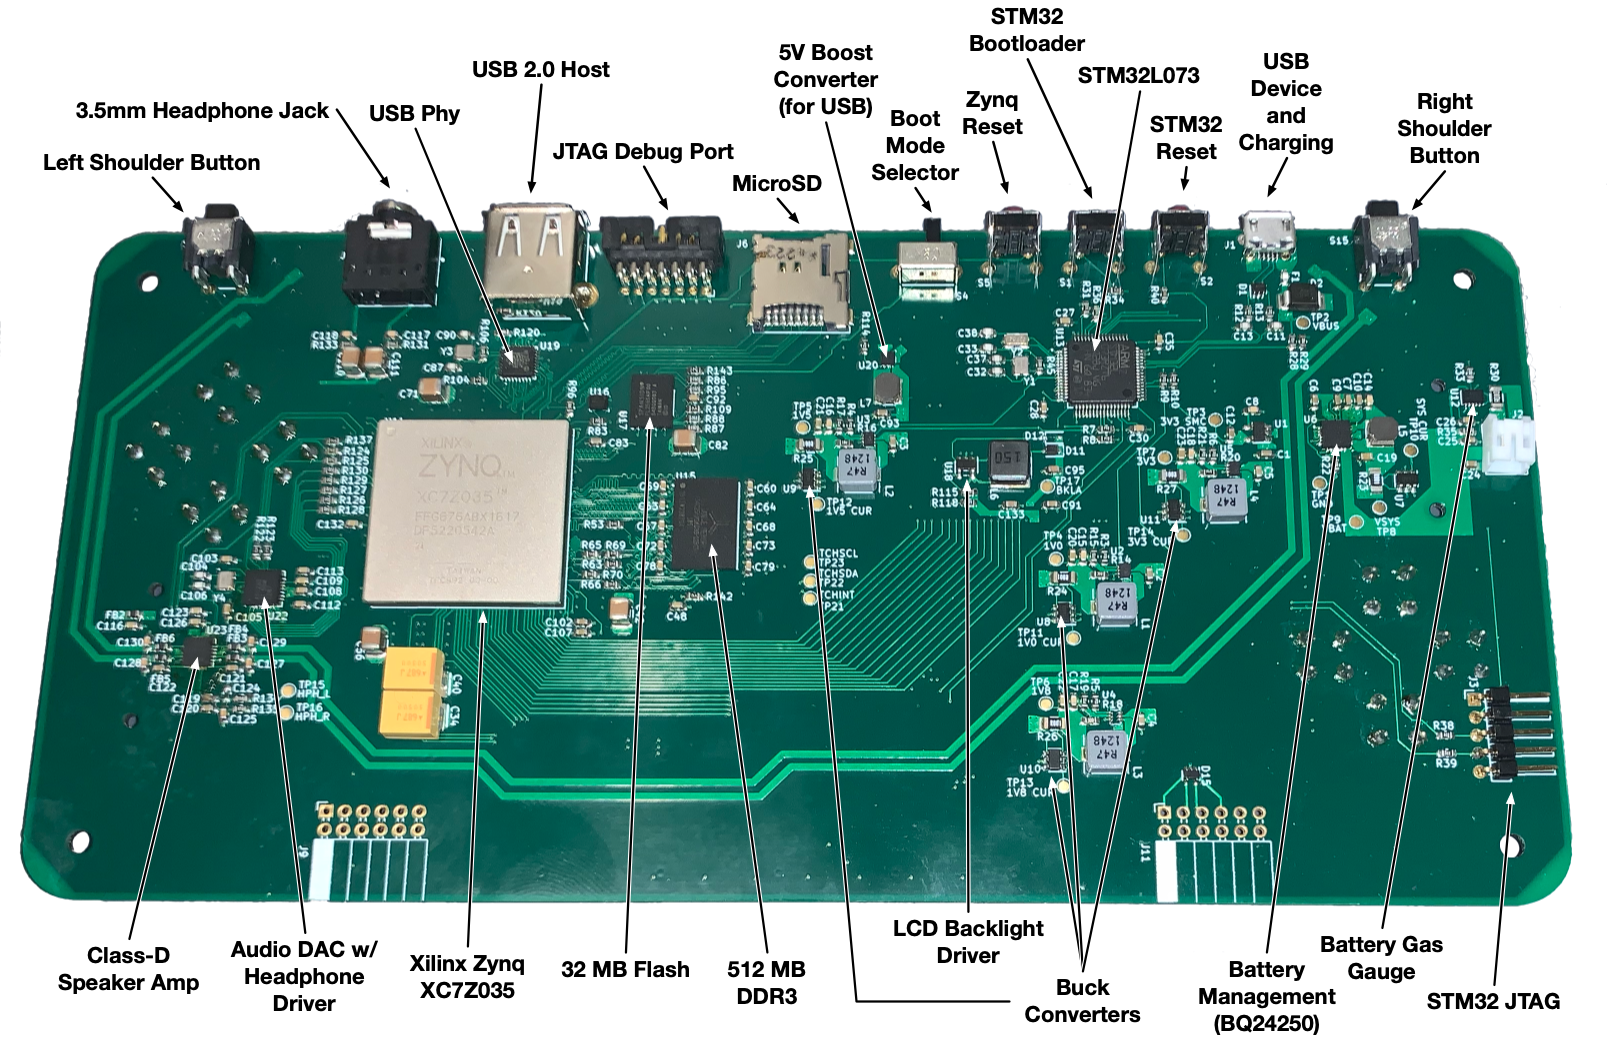 Diagram of the Gameslab PCB with all major components labeled